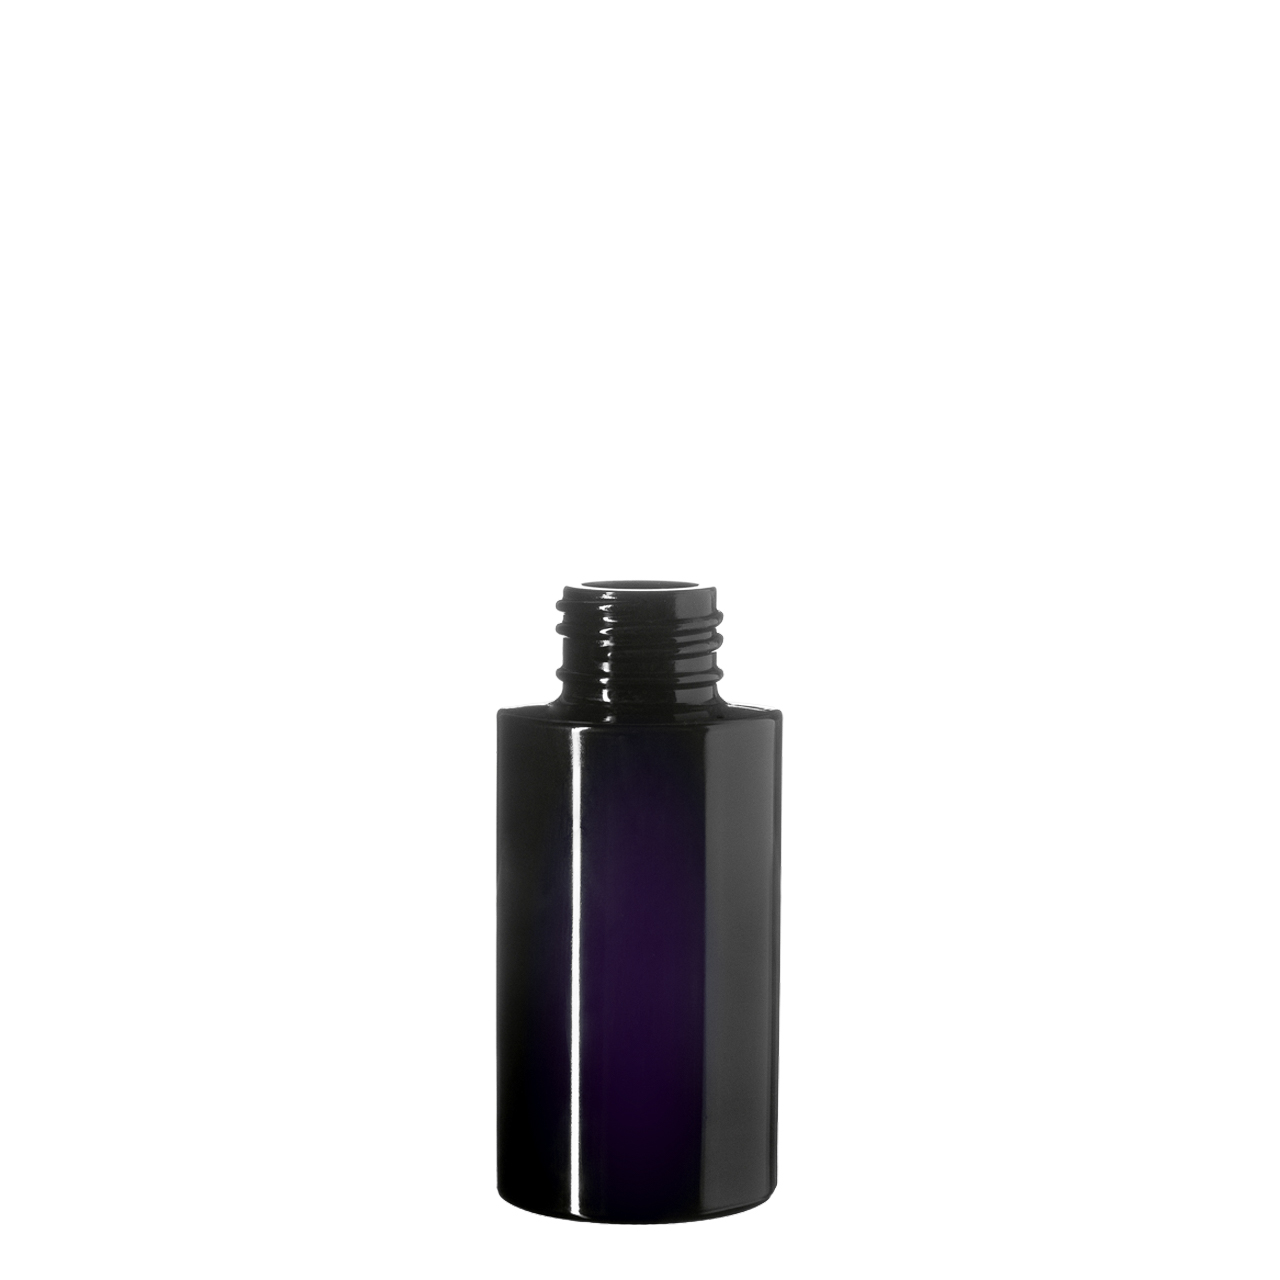 Cosmetic bottle Virgo 50 ml, Miron, 24/410 thread